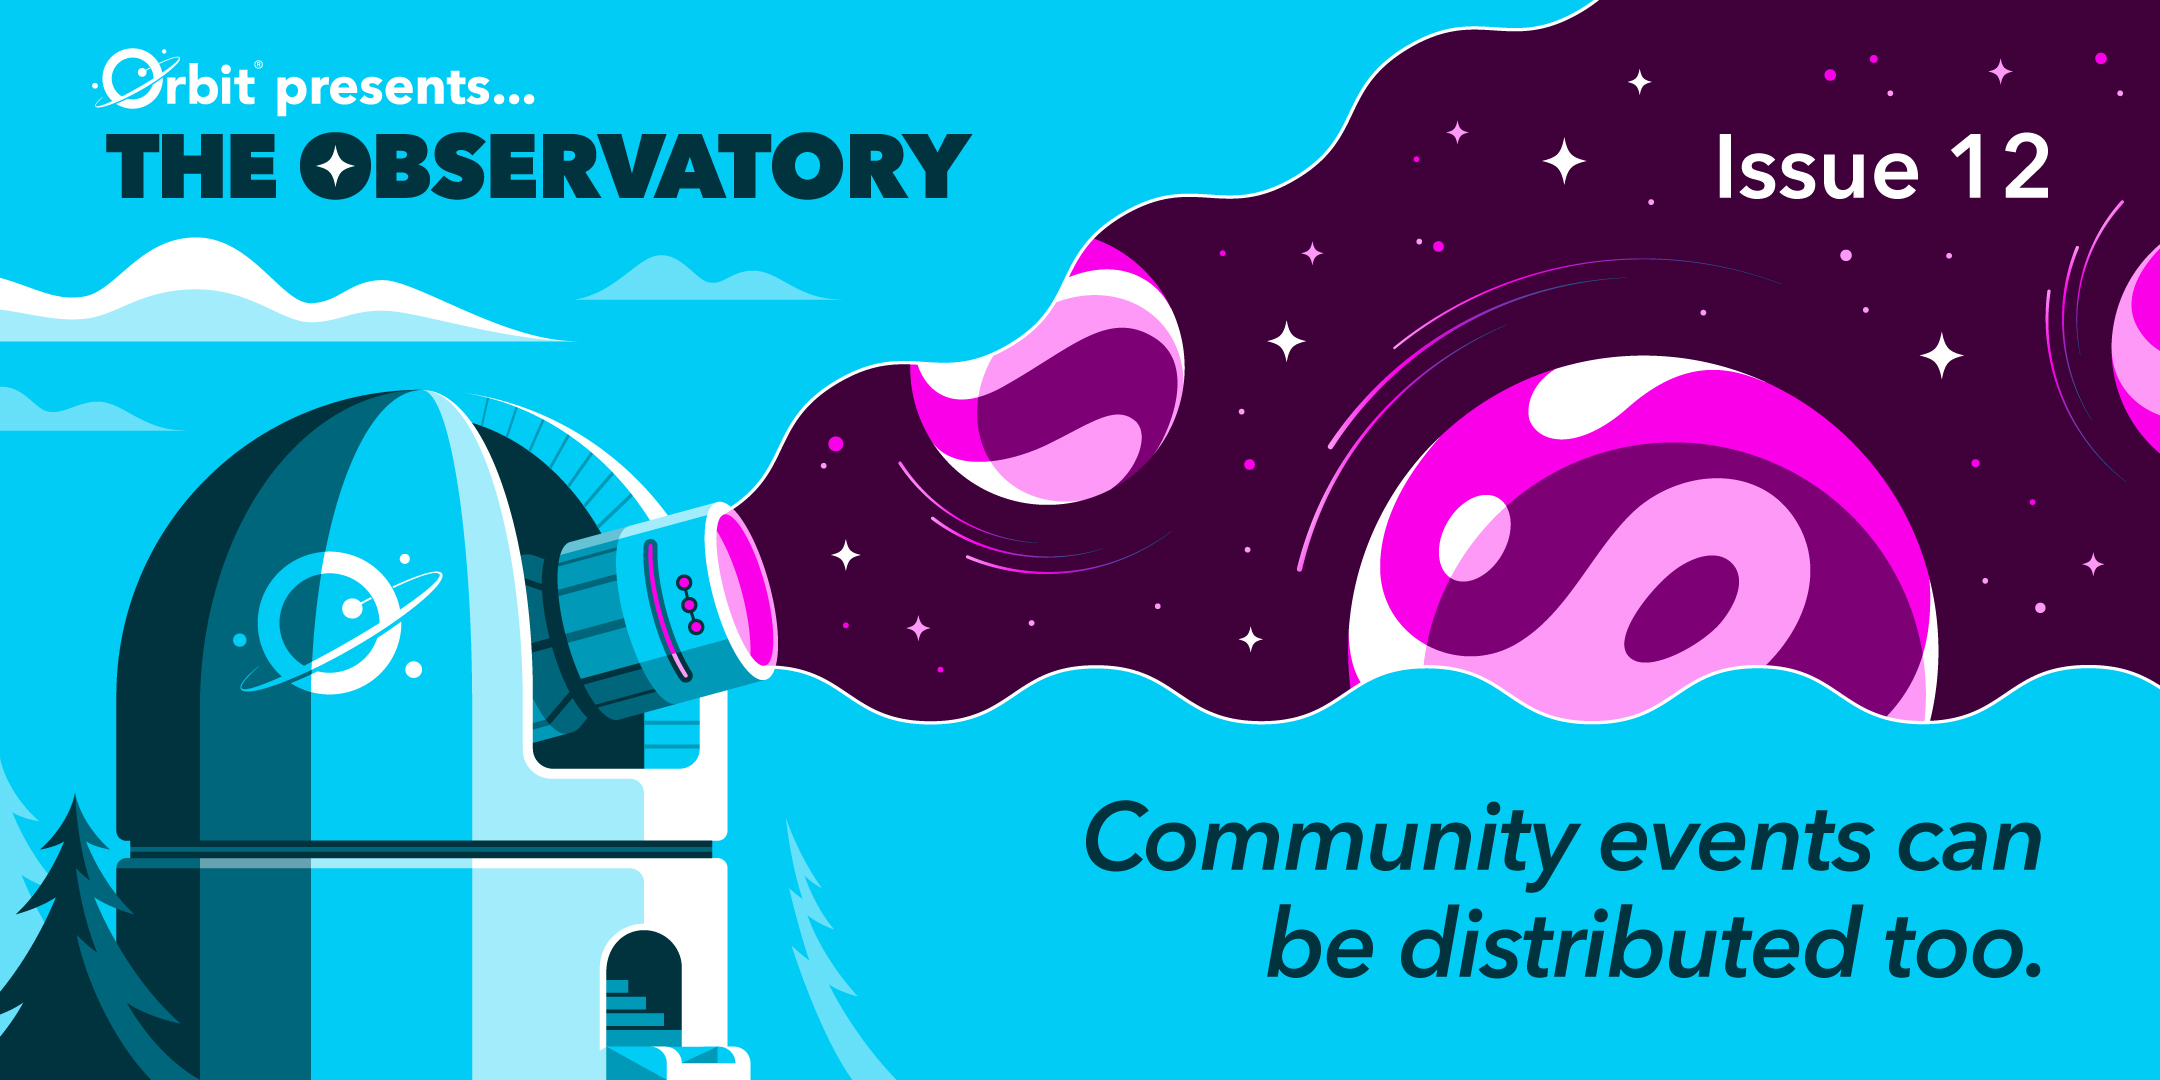 Community events can be distributed too